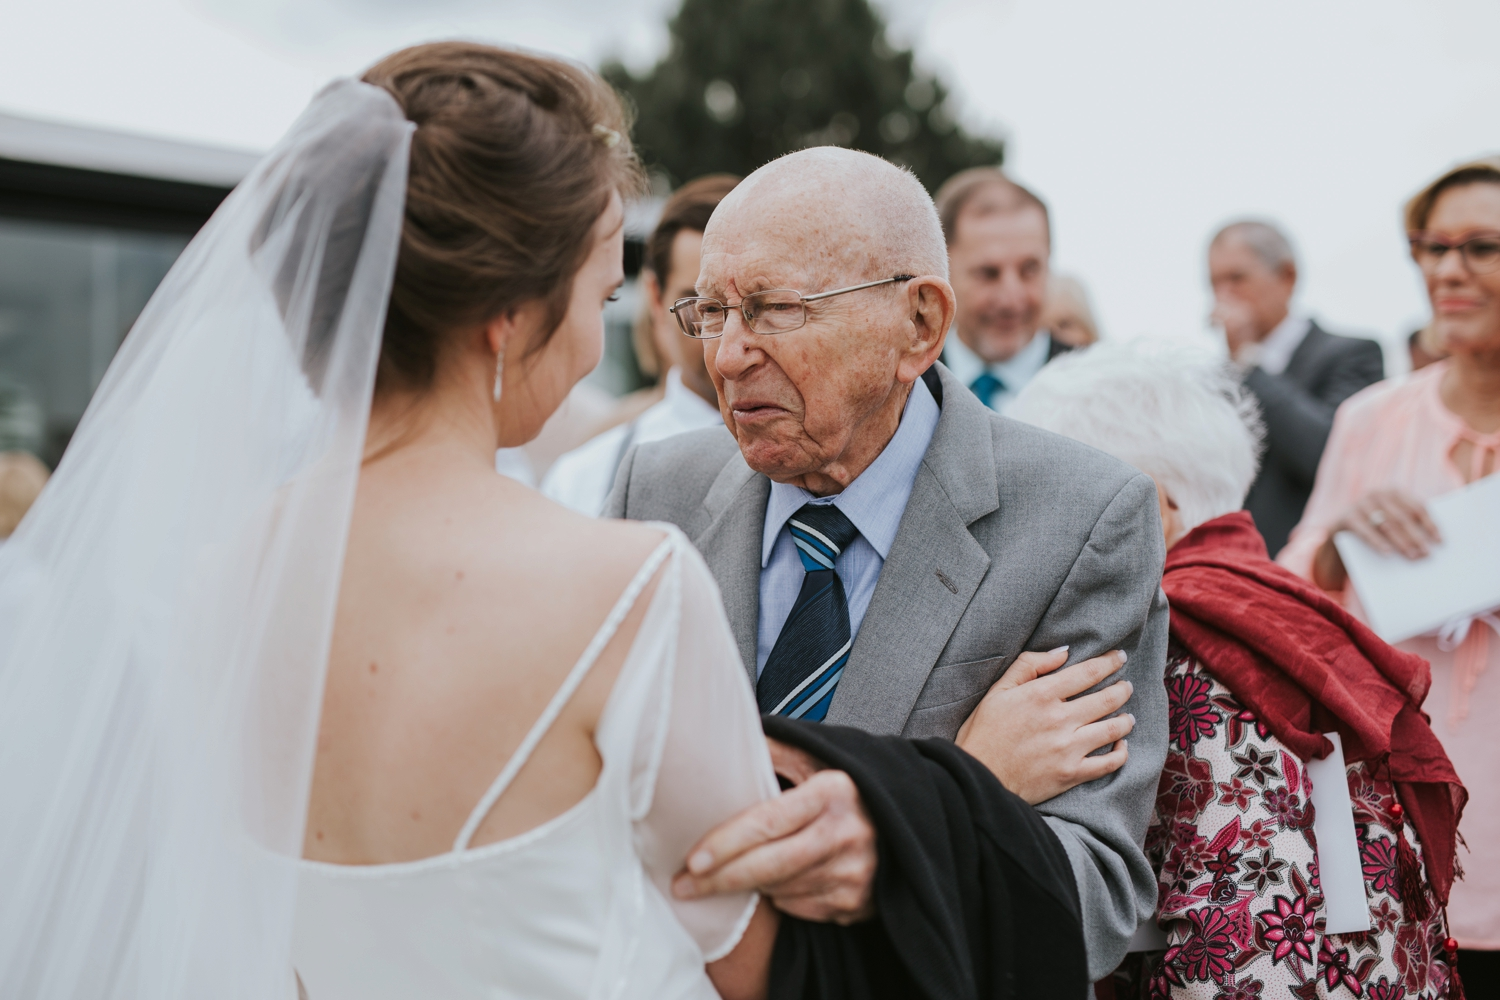 Candid moment of grandfather congratulating bride on her marriage at Cecil Green Park House